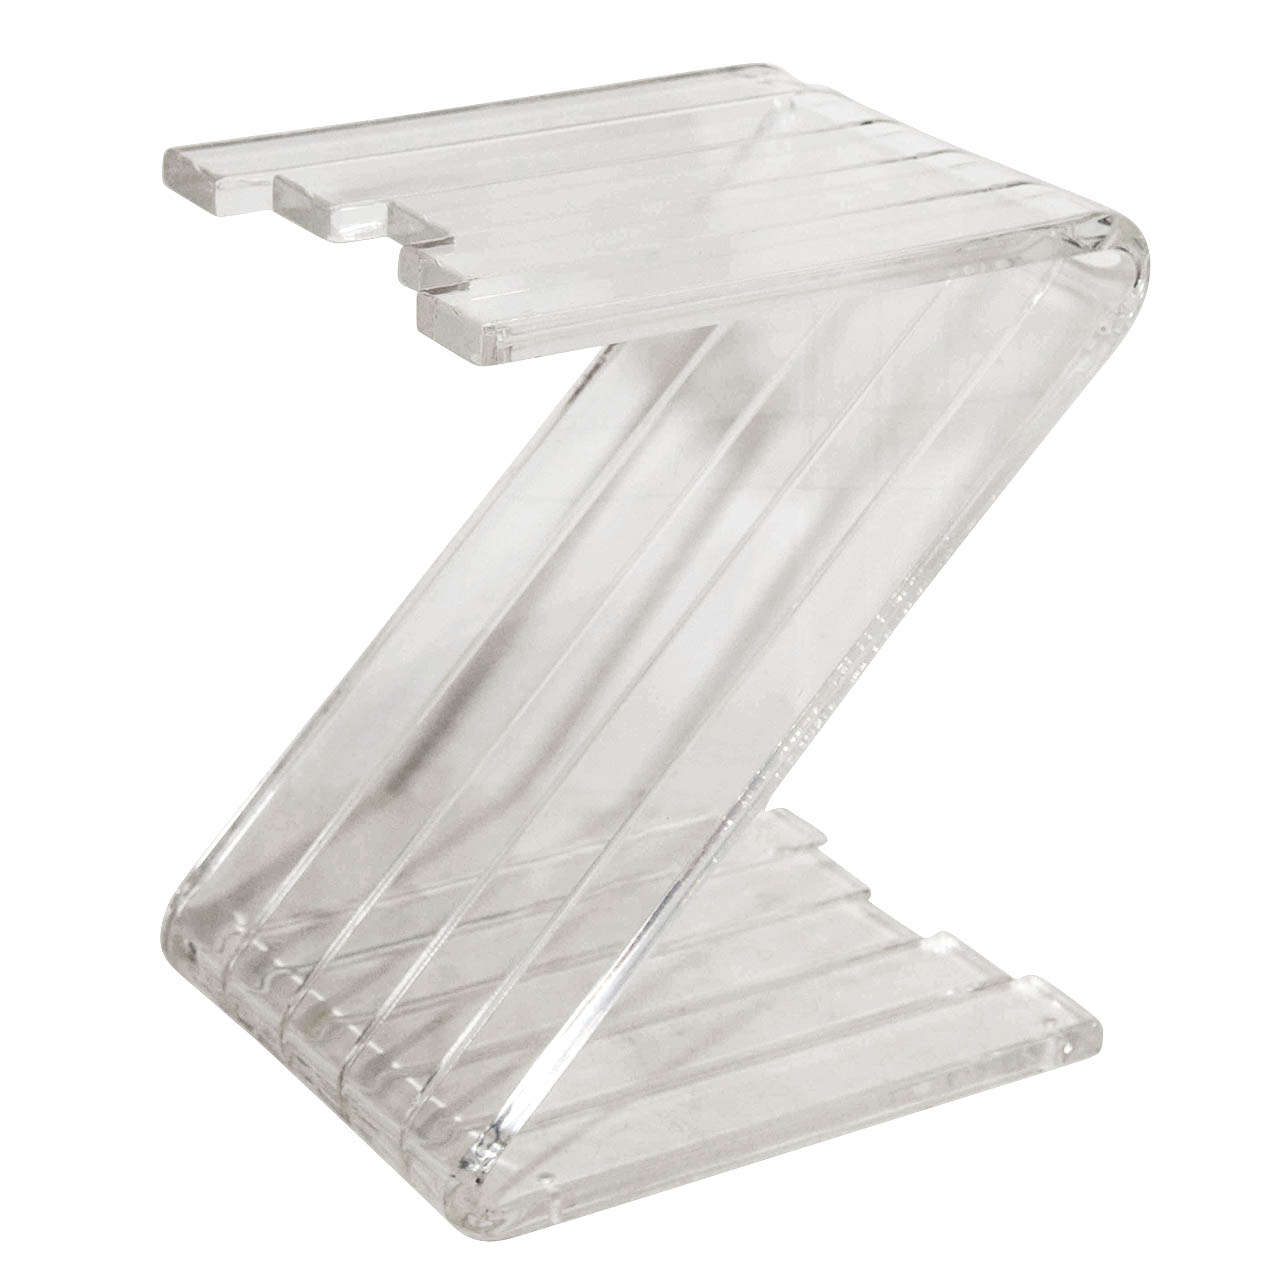 a mid century thick lucite z shaped end table at stdibs - a mid century thick lucite z shaped end table